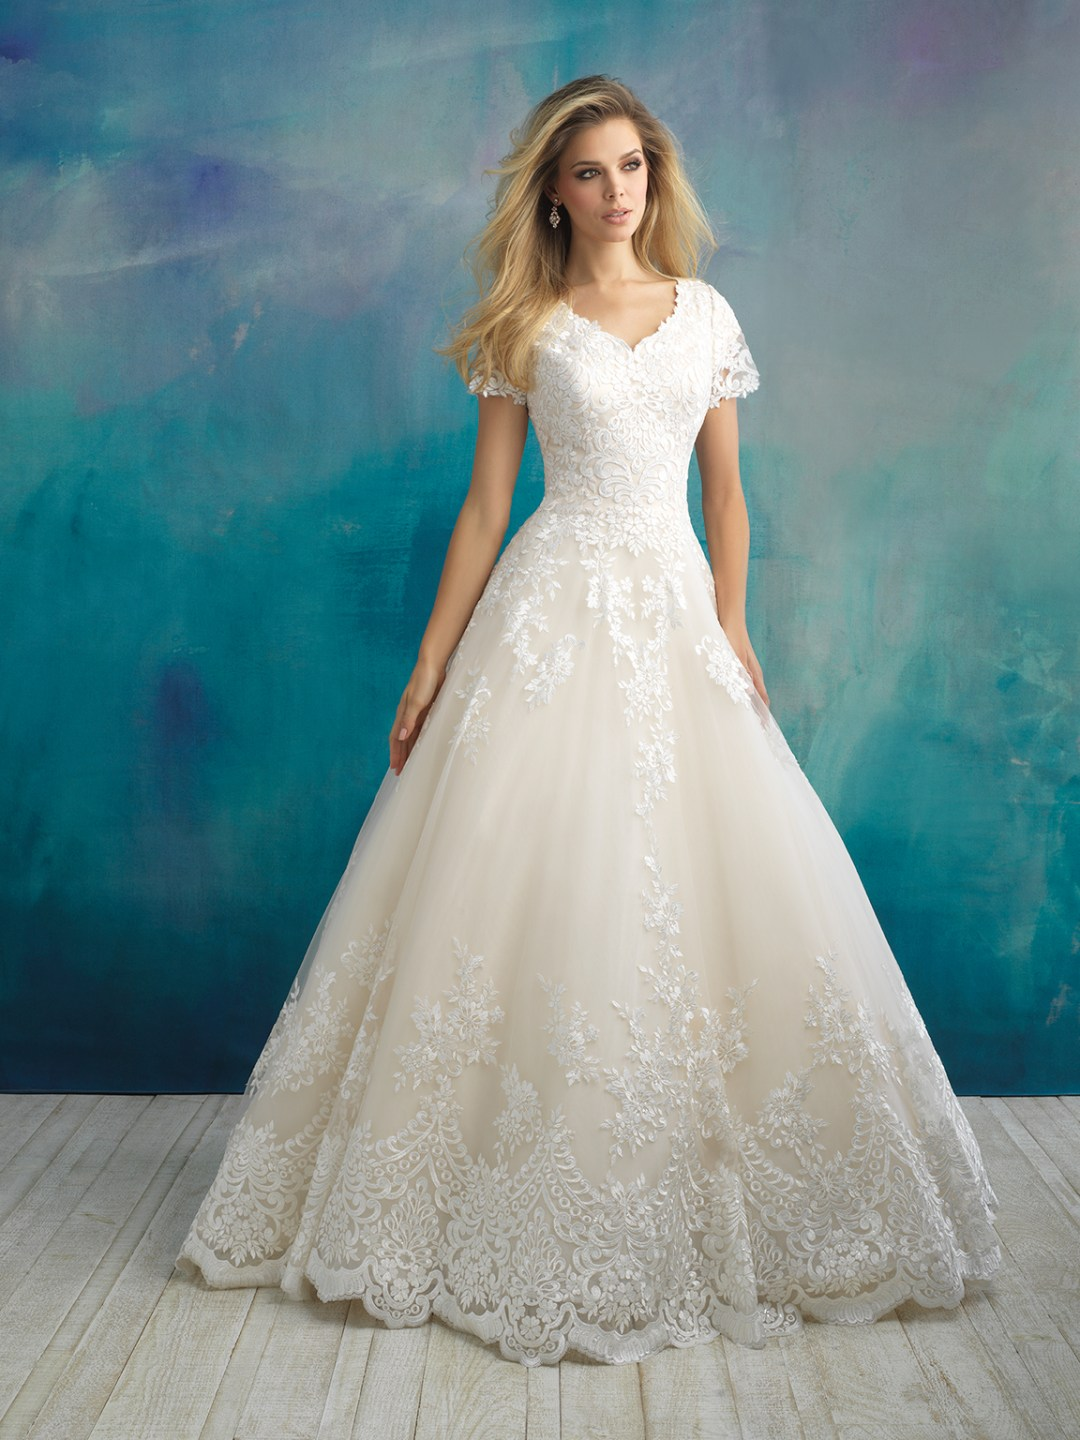 25 Modest Ball Gown Wedding Dresses - 14